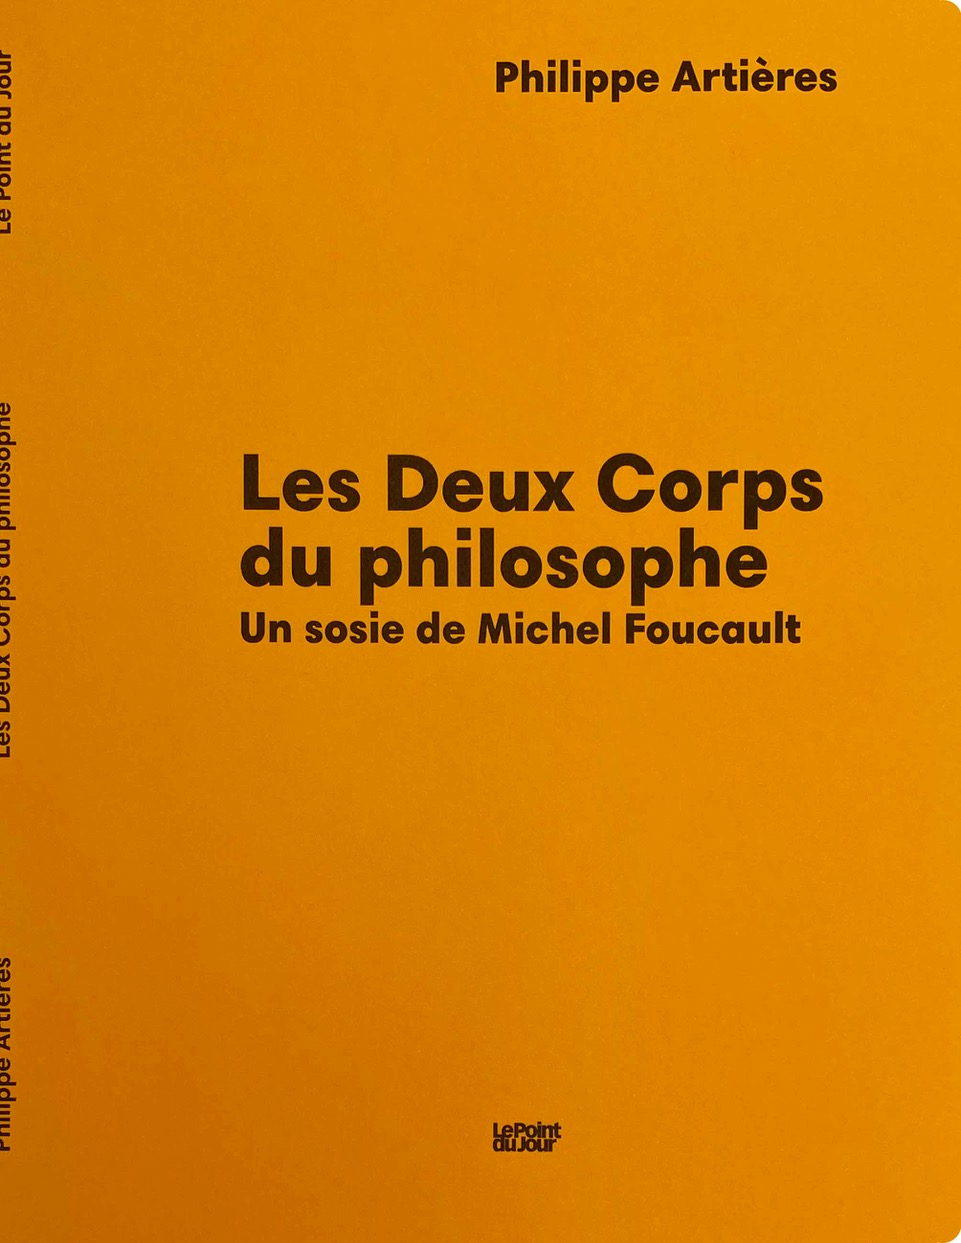 Deux-corps_2020-04-14_cover.indd